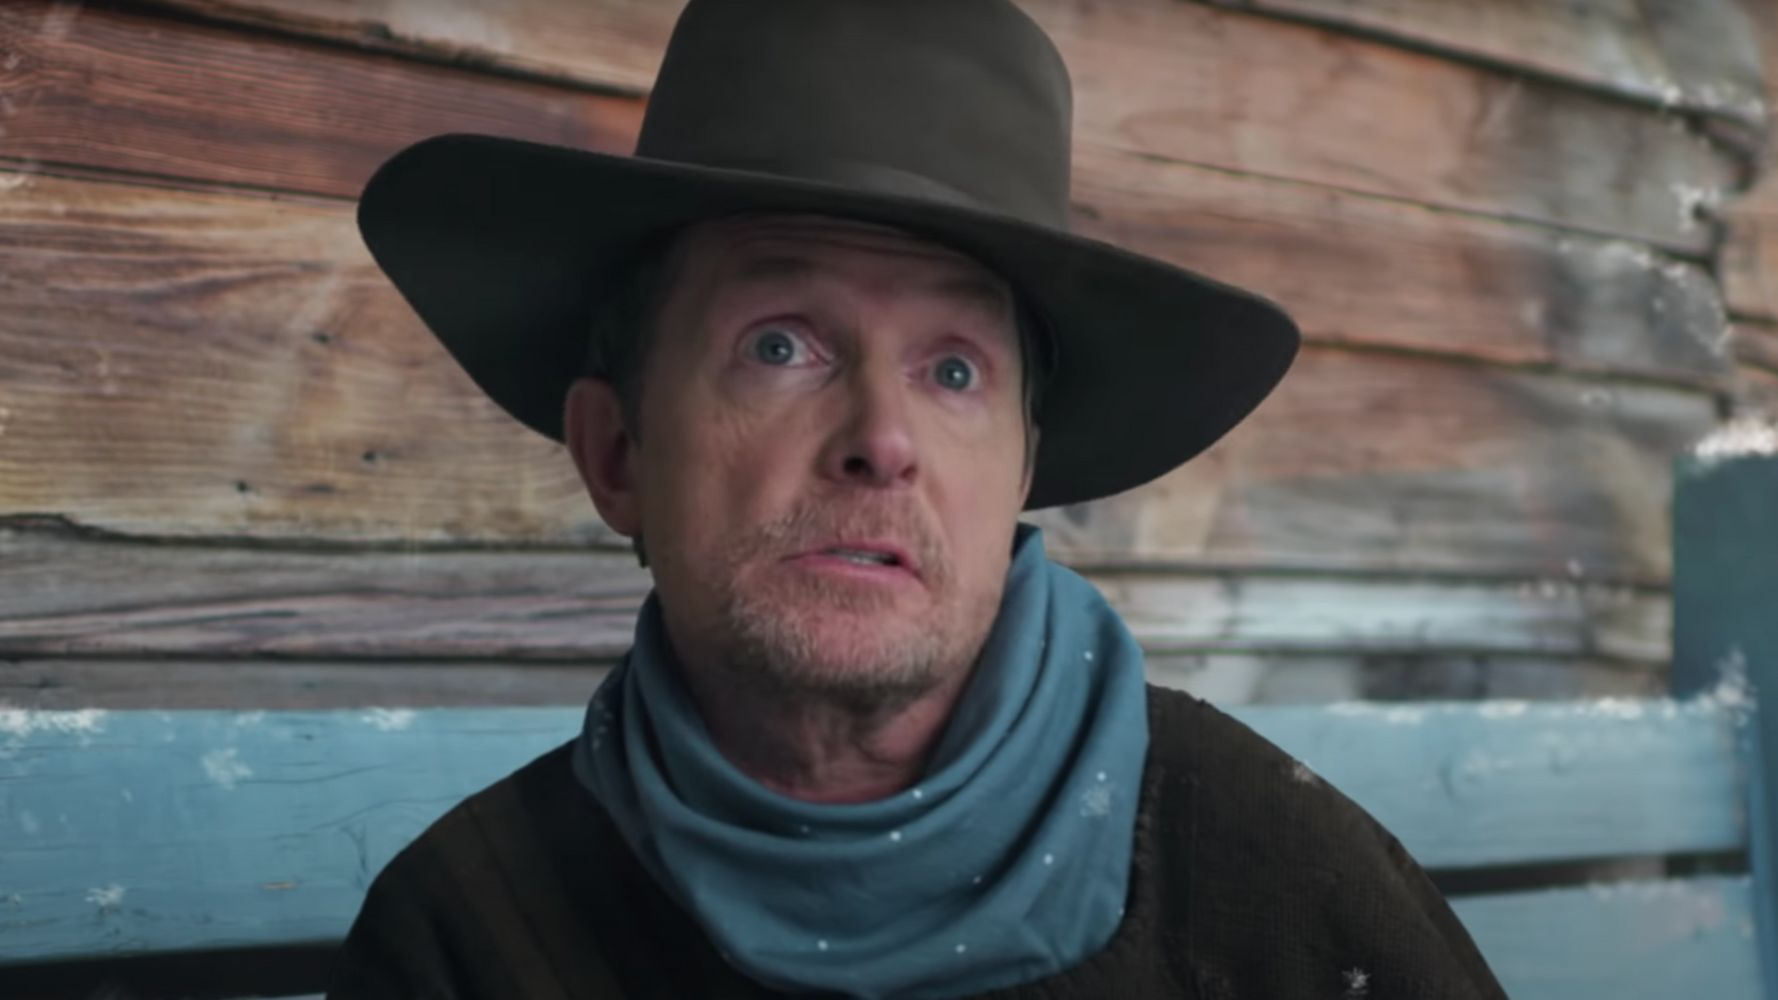 Michael J. Fox Warns About Going 'Back To The Future' Of 2020 In Lil Nas X Video